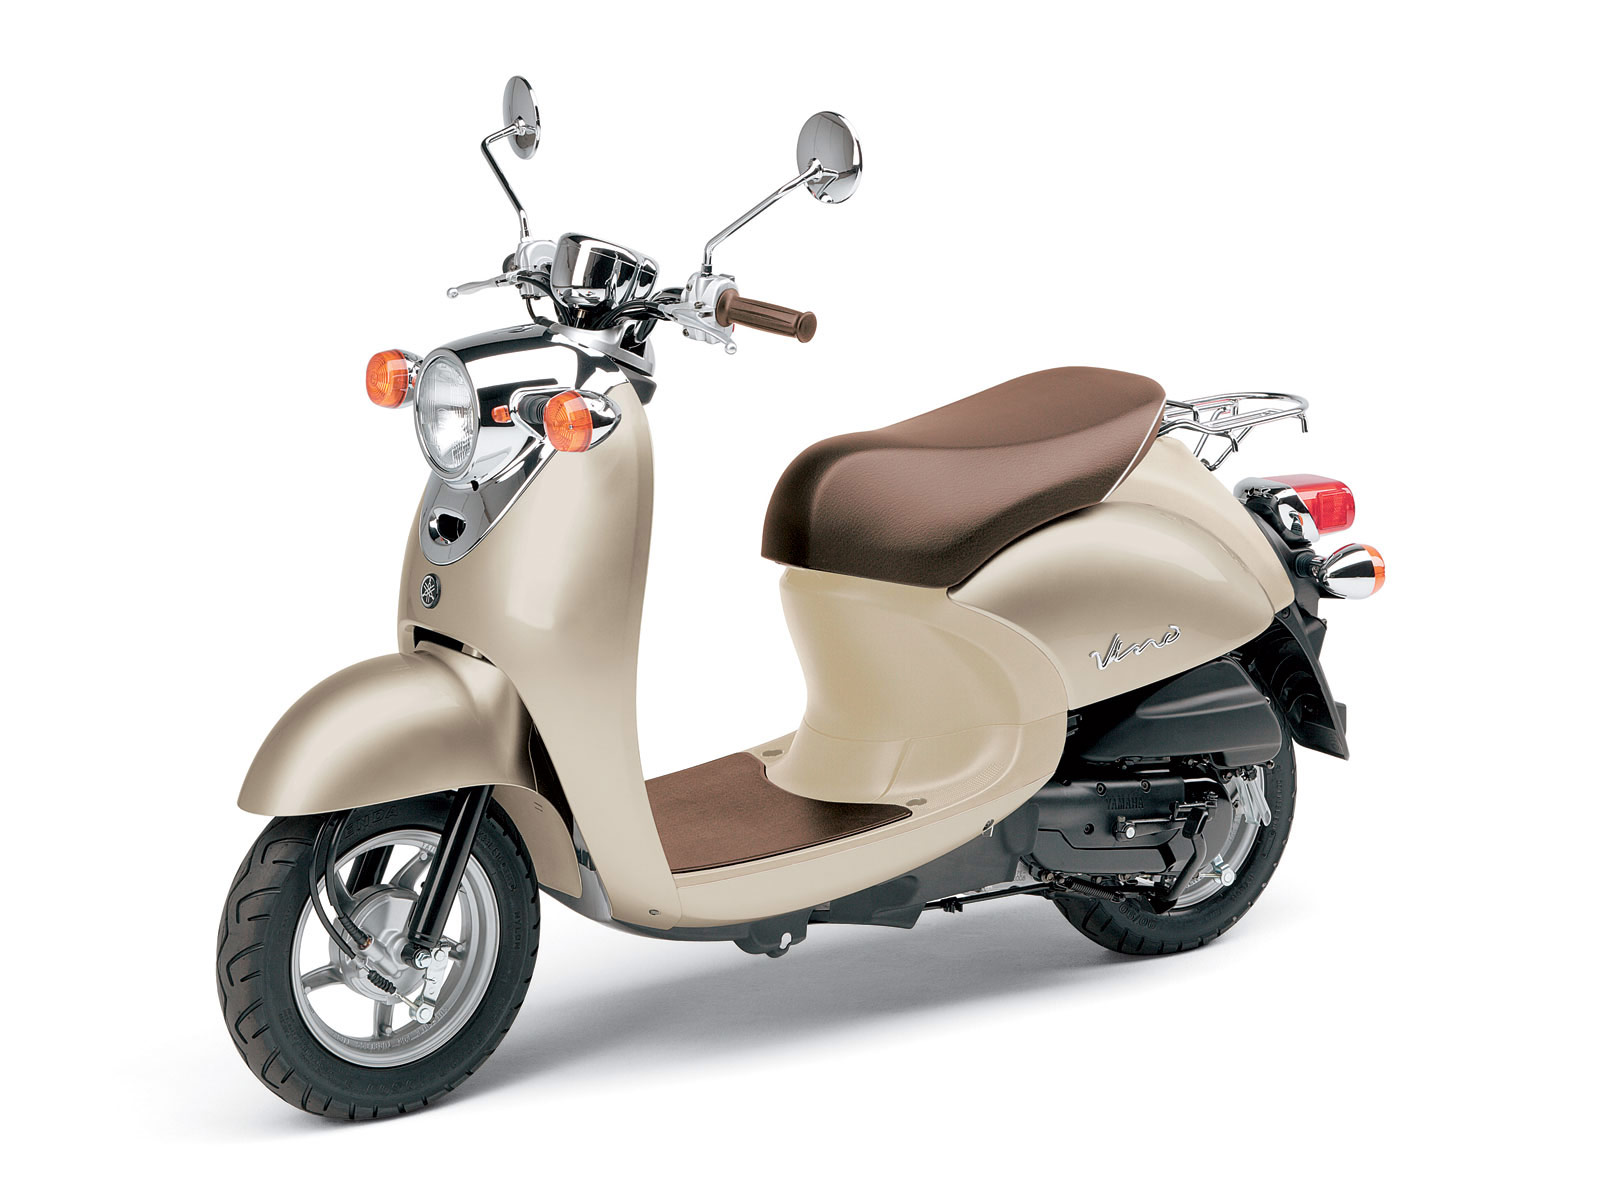 2011 yamaha vino 50 classic scooter pictures. Black Bedroom Furniture Sets. Home Design Ideas